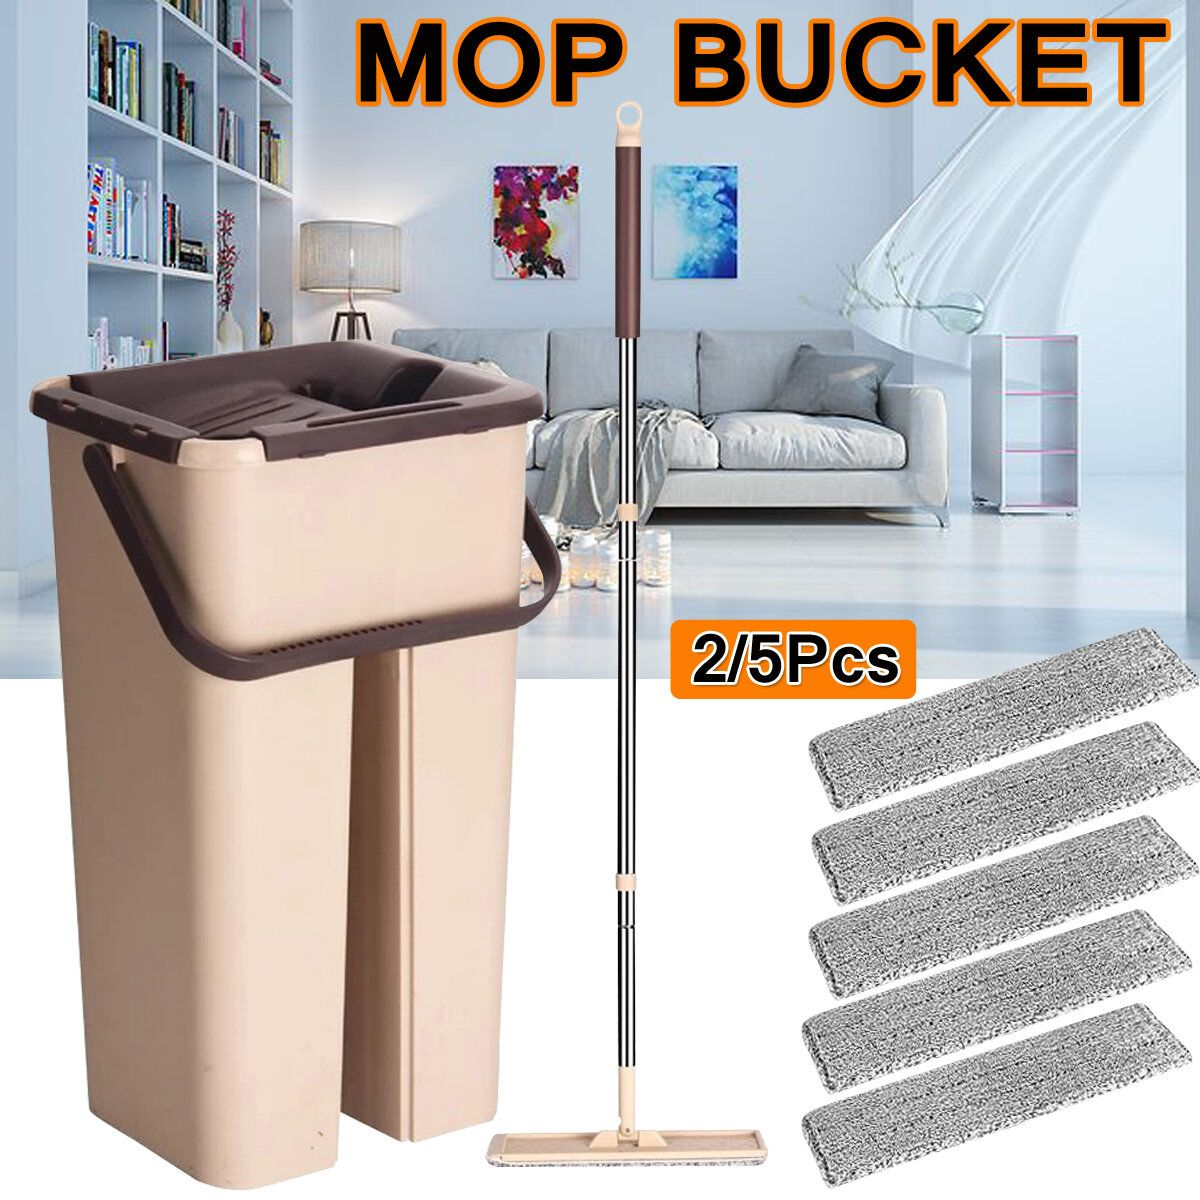 Self Cleaning Drying Wringing Mop Bucket Flat Floor Free Hand Wash Mop Wet Dry Floor Cleaner Cleaning Mops Mops